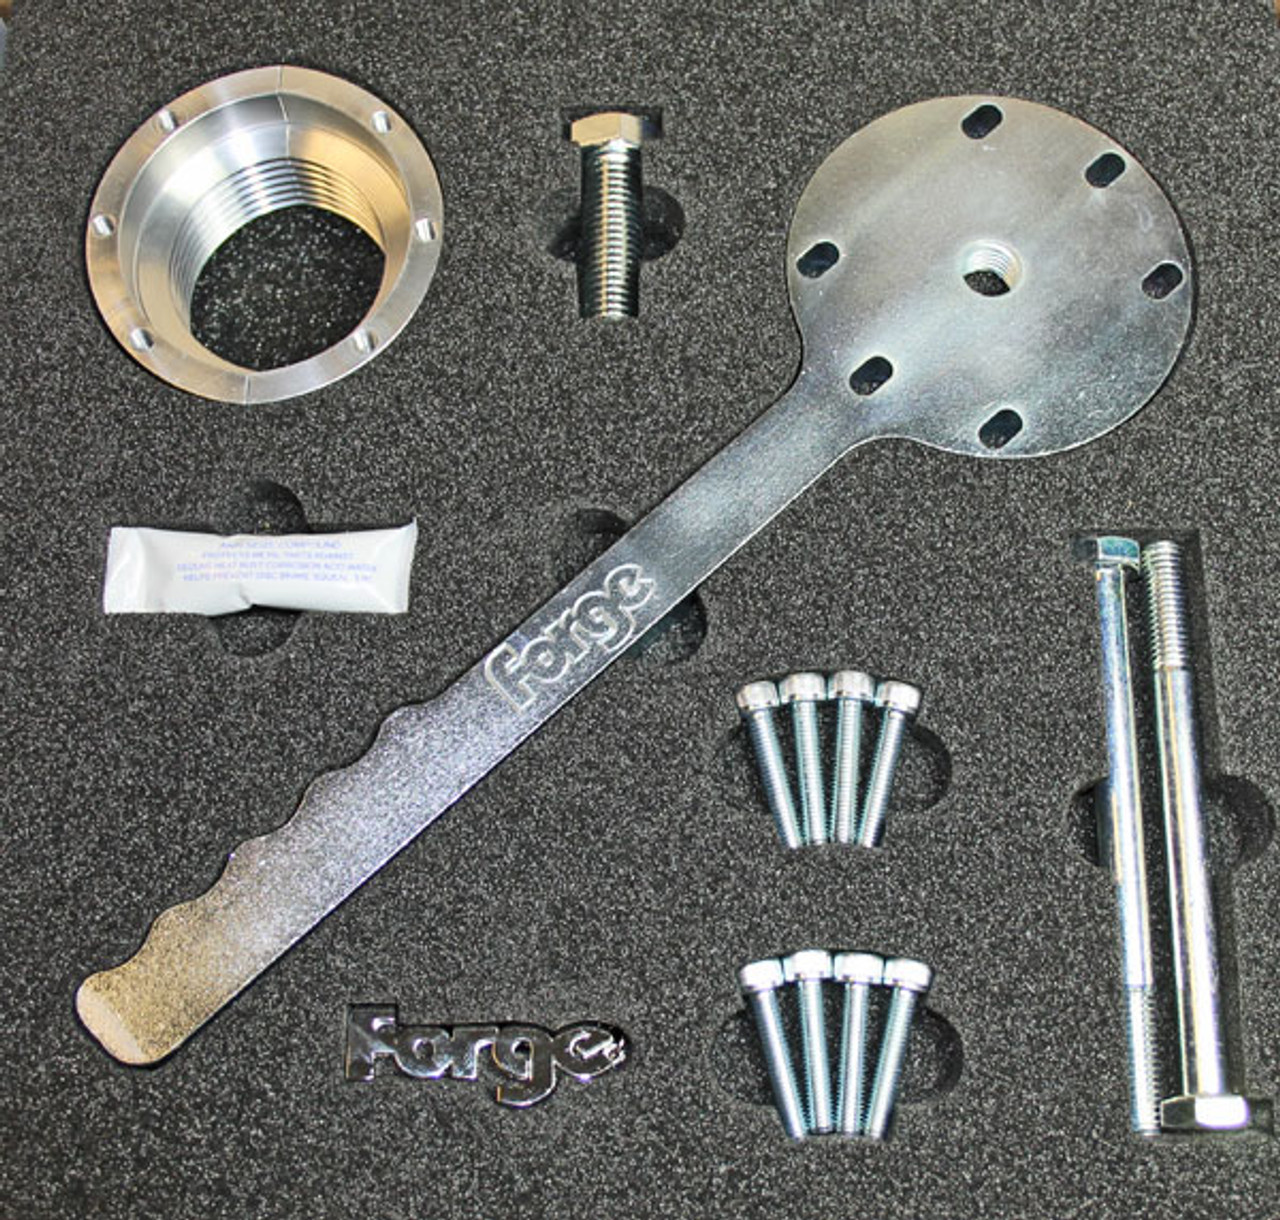 Supercharger Pulley Audi: Forge Supercharger Pulley Removal Tool